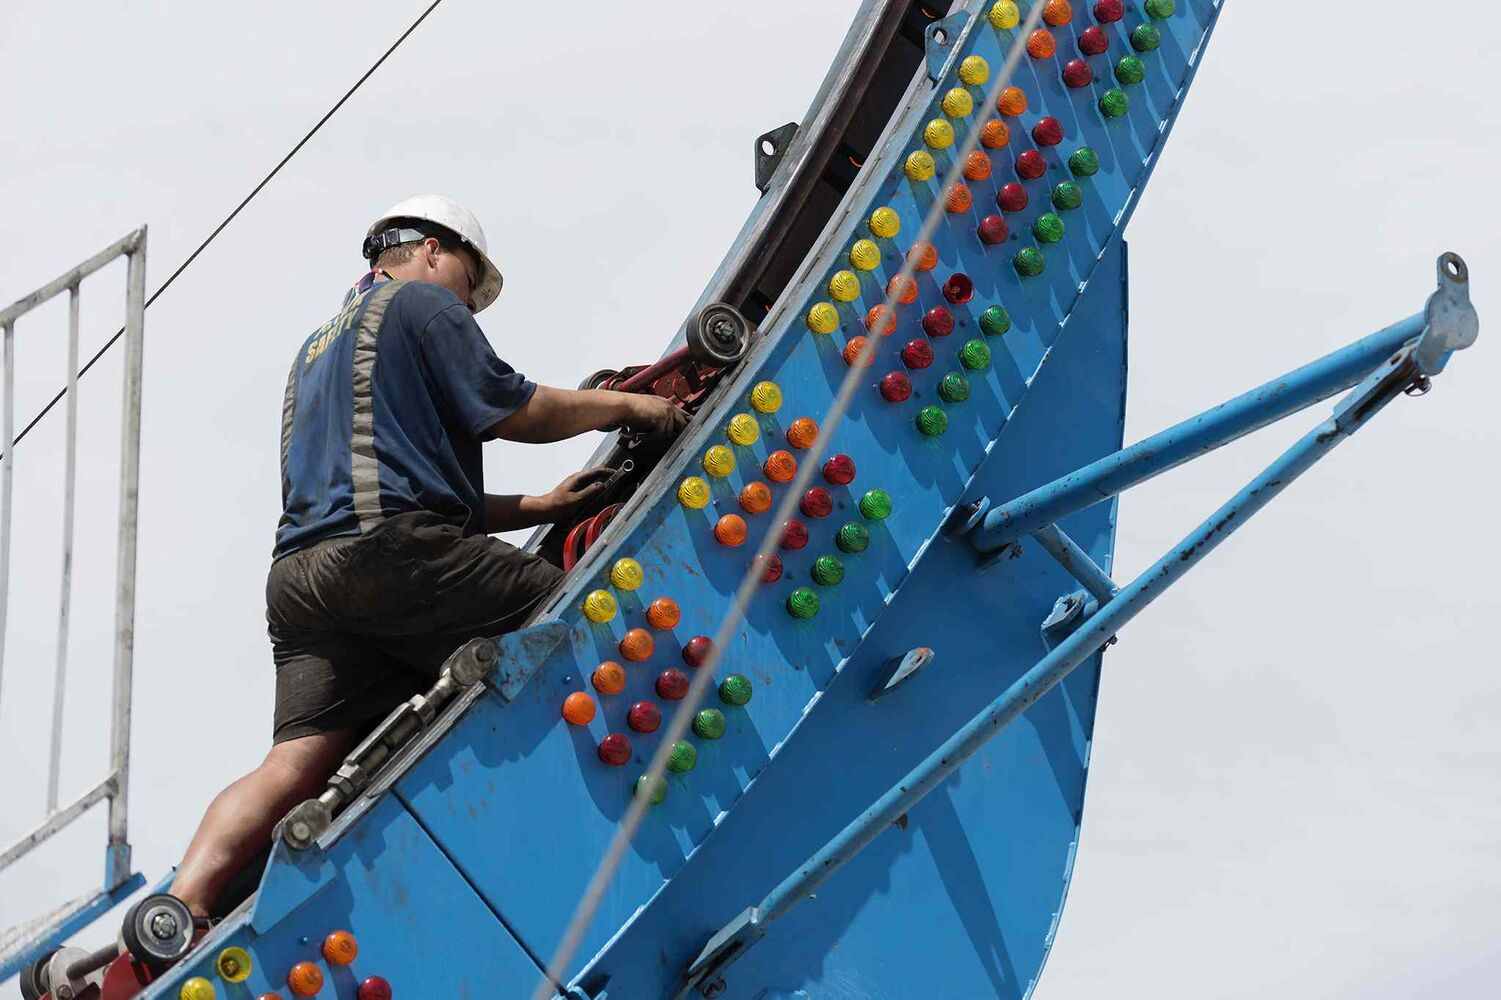 Roan Van Der Westhuizen works on preparing the Fire Ball ride at the Red River Ex before opening day June 13.